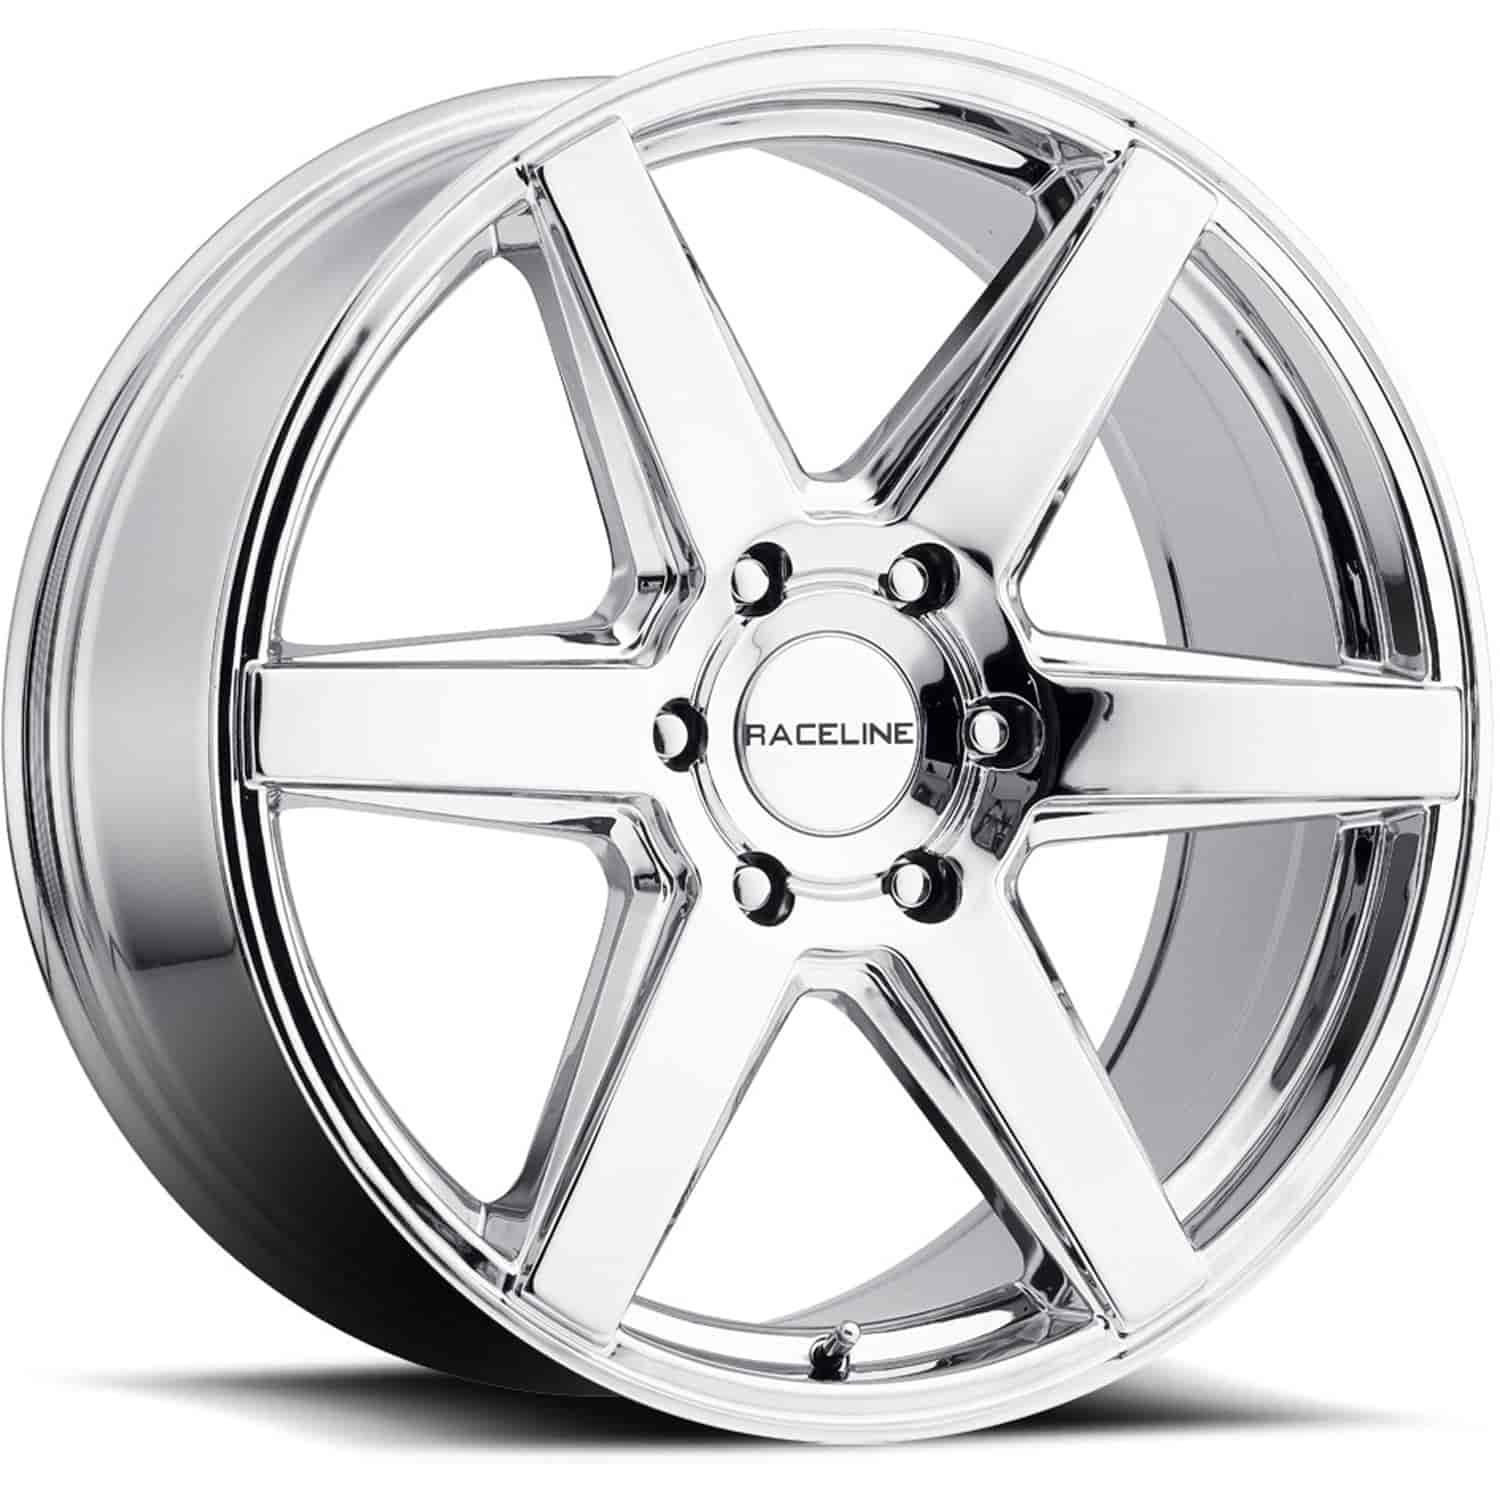 Raceline Wheels 156C8806015